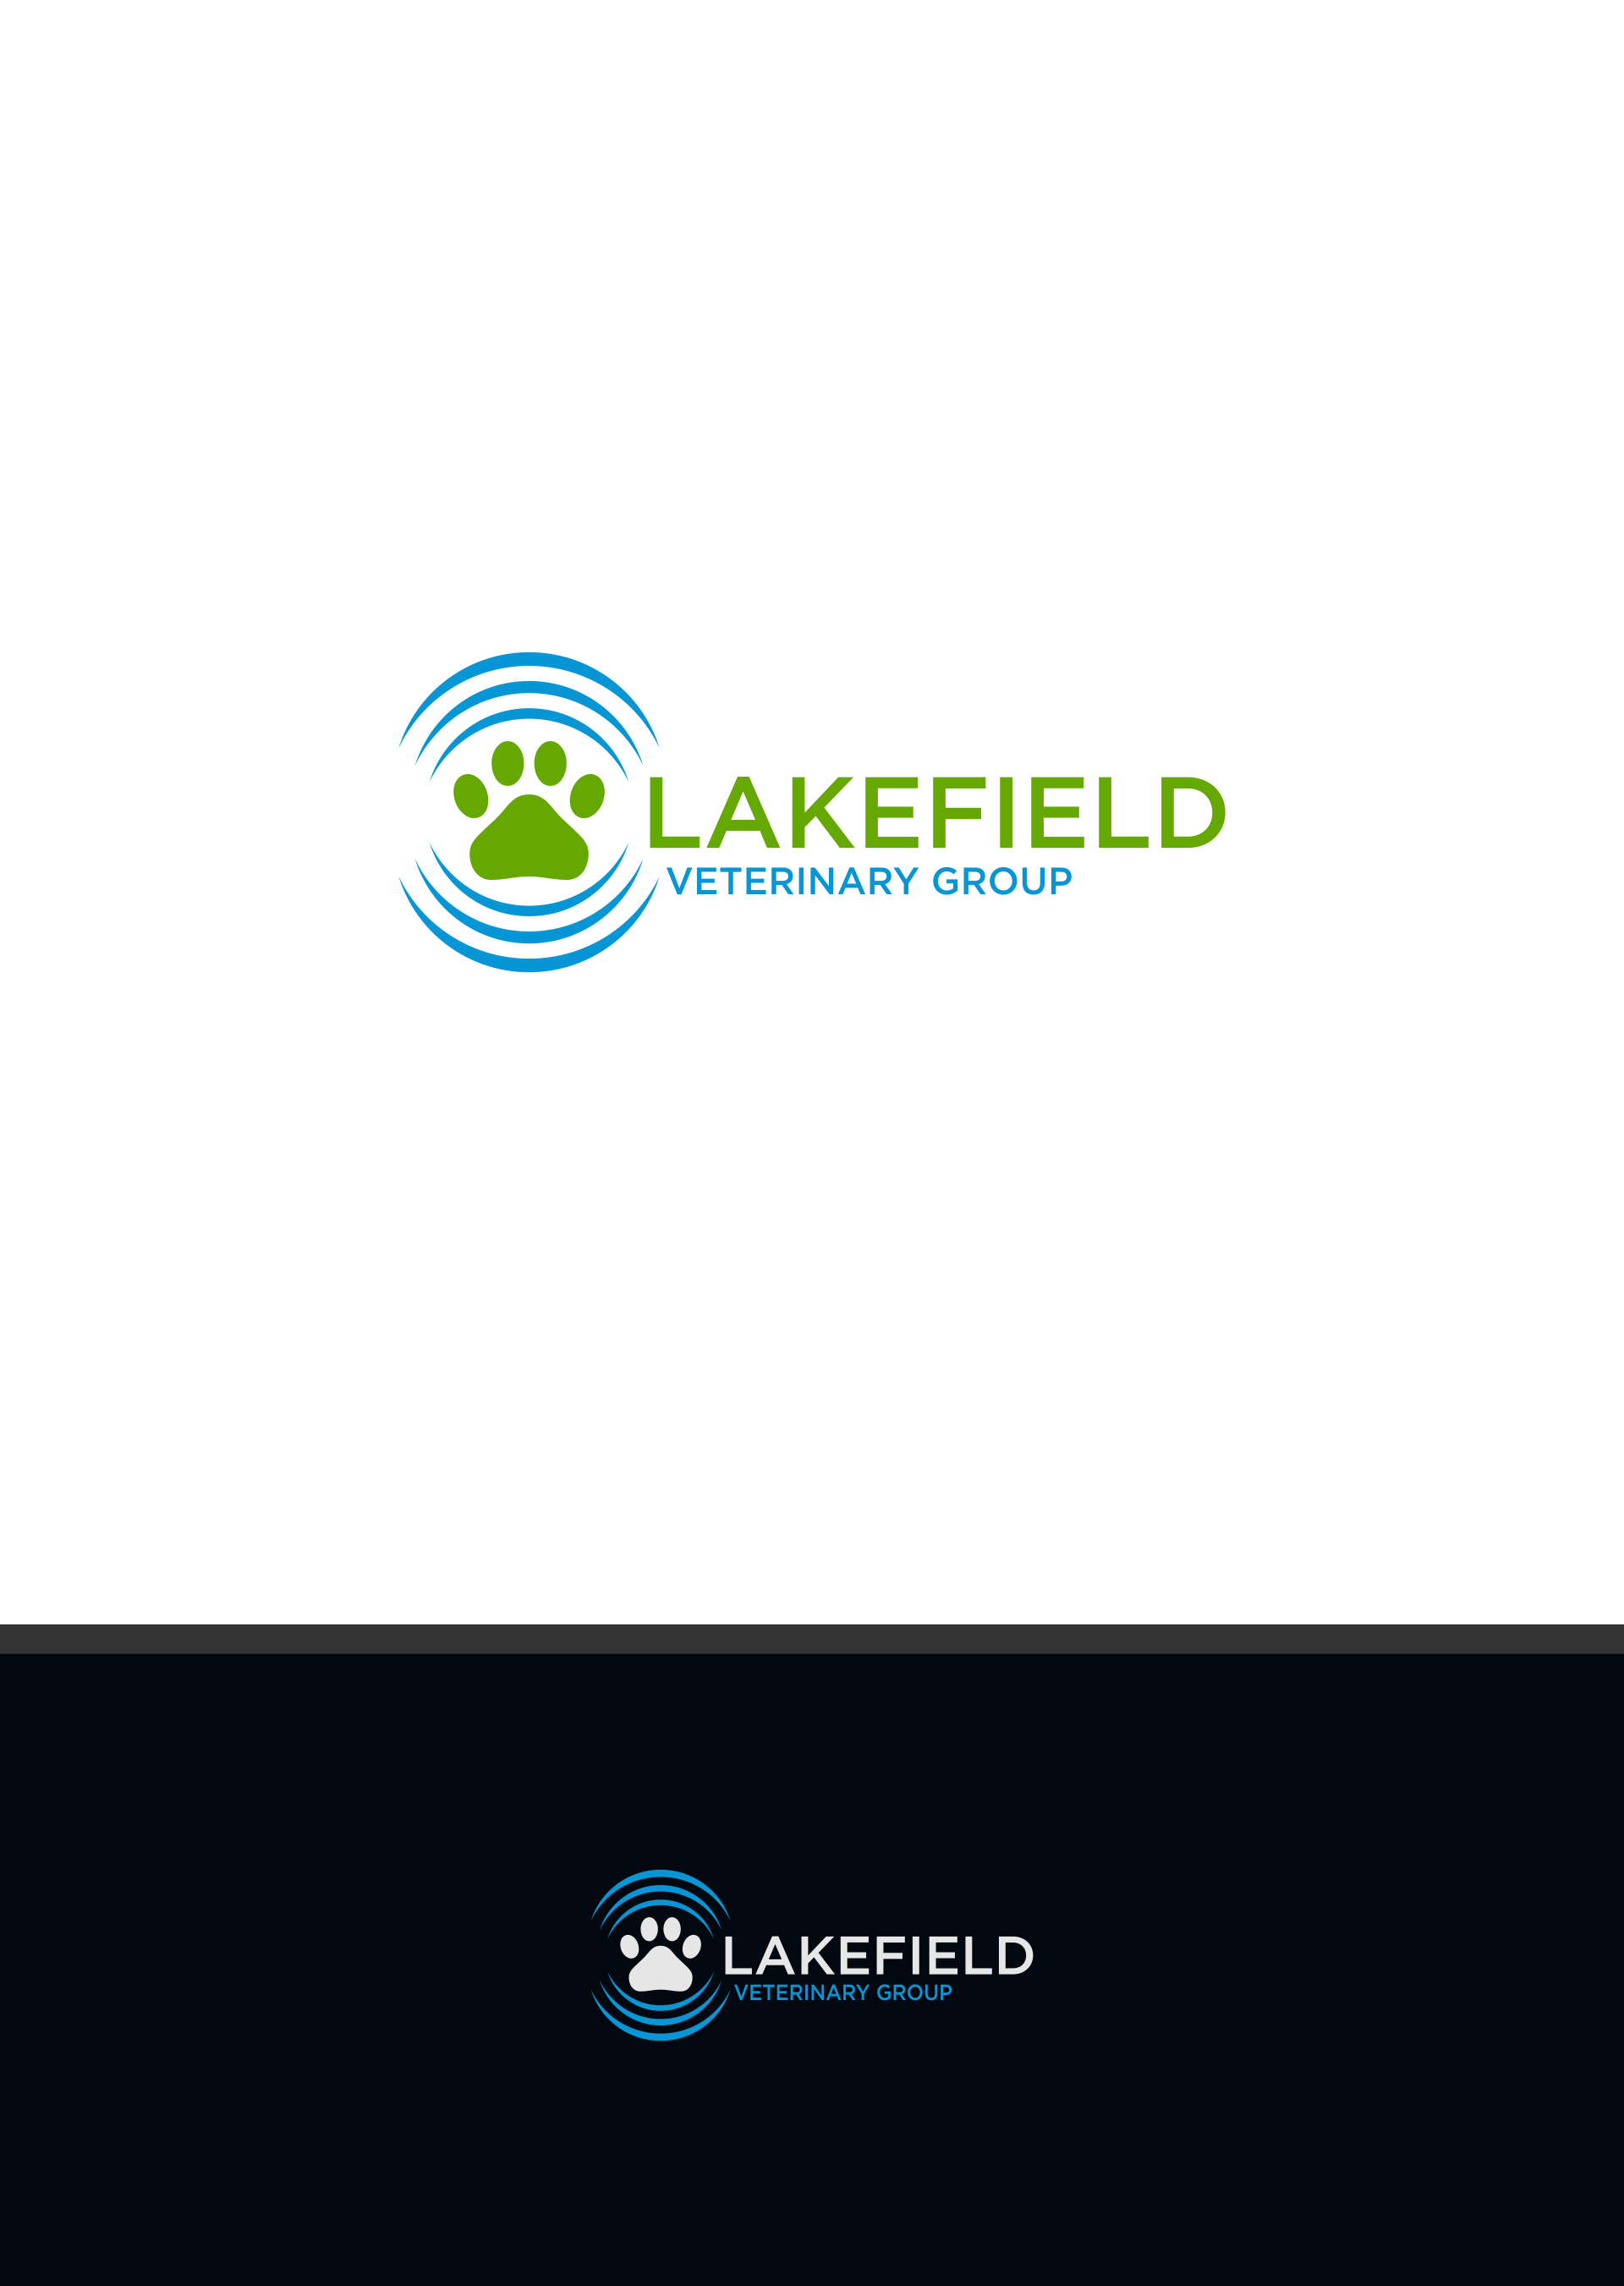 Logo Design by DANANG PRASETYO - Entry No. 19 in the Logo Design Contest Inspiring Logo Design for Lakefield Veterinary Group.